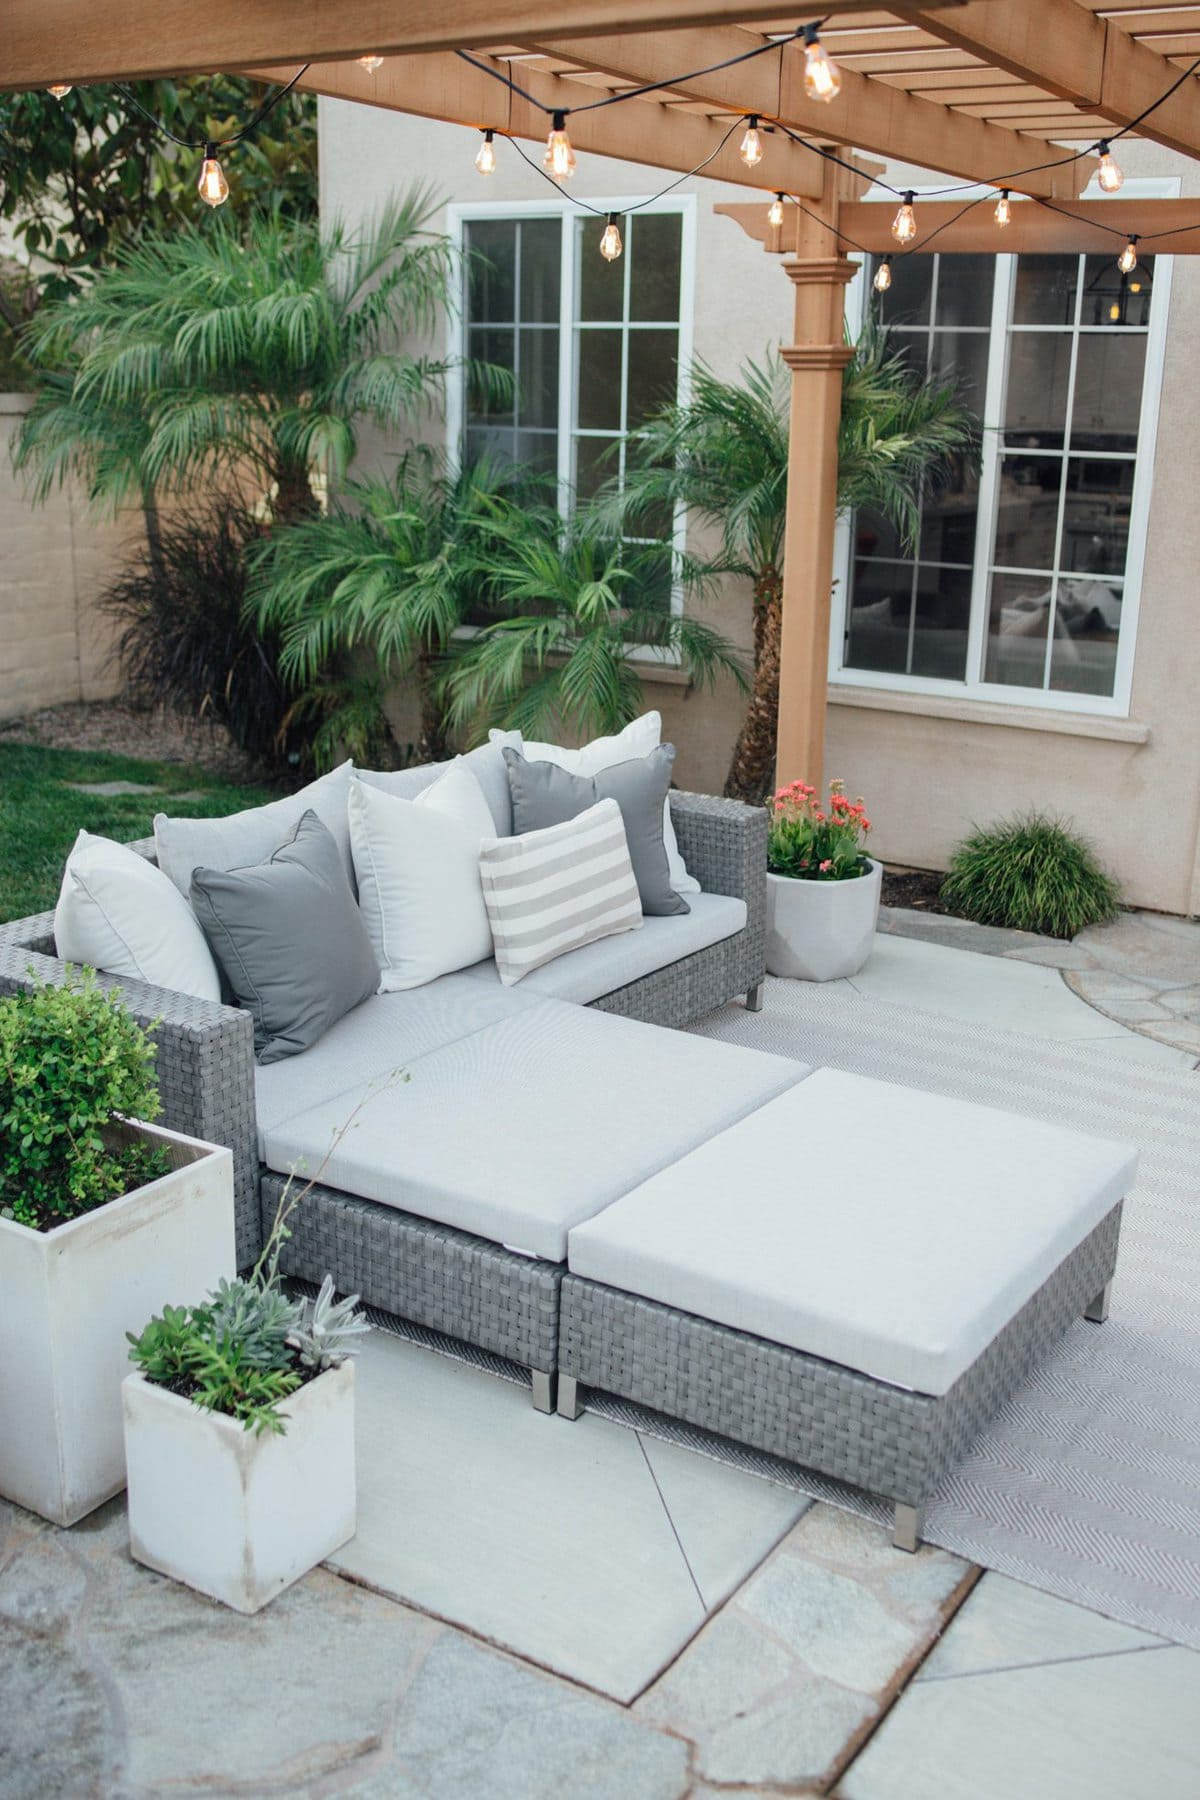 patio furniture for backyard